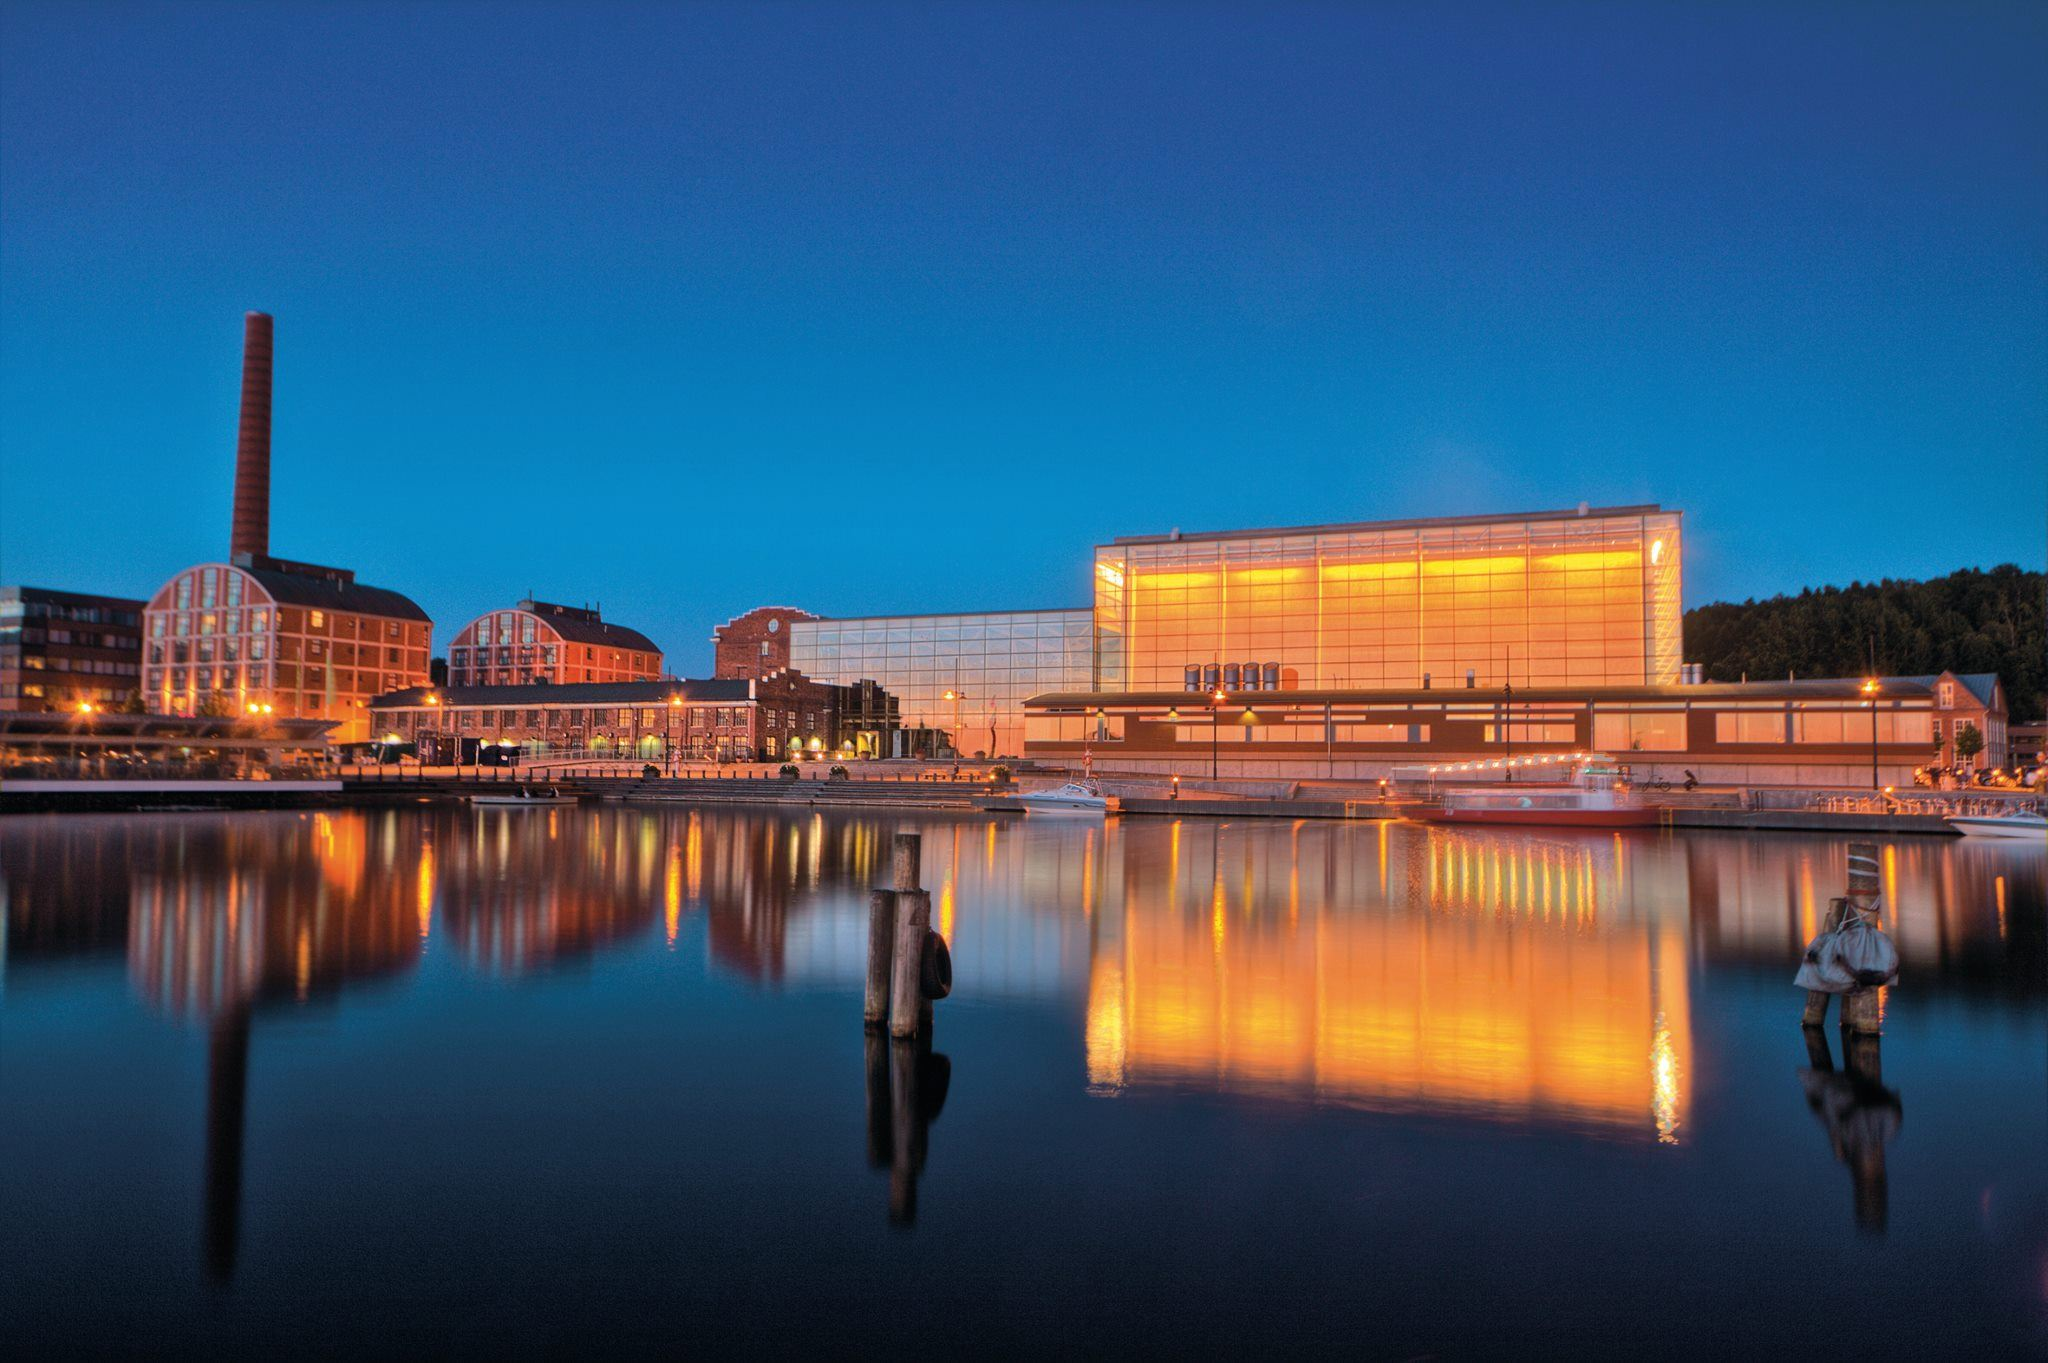 Sibelius Hall Congress and Concert Centre